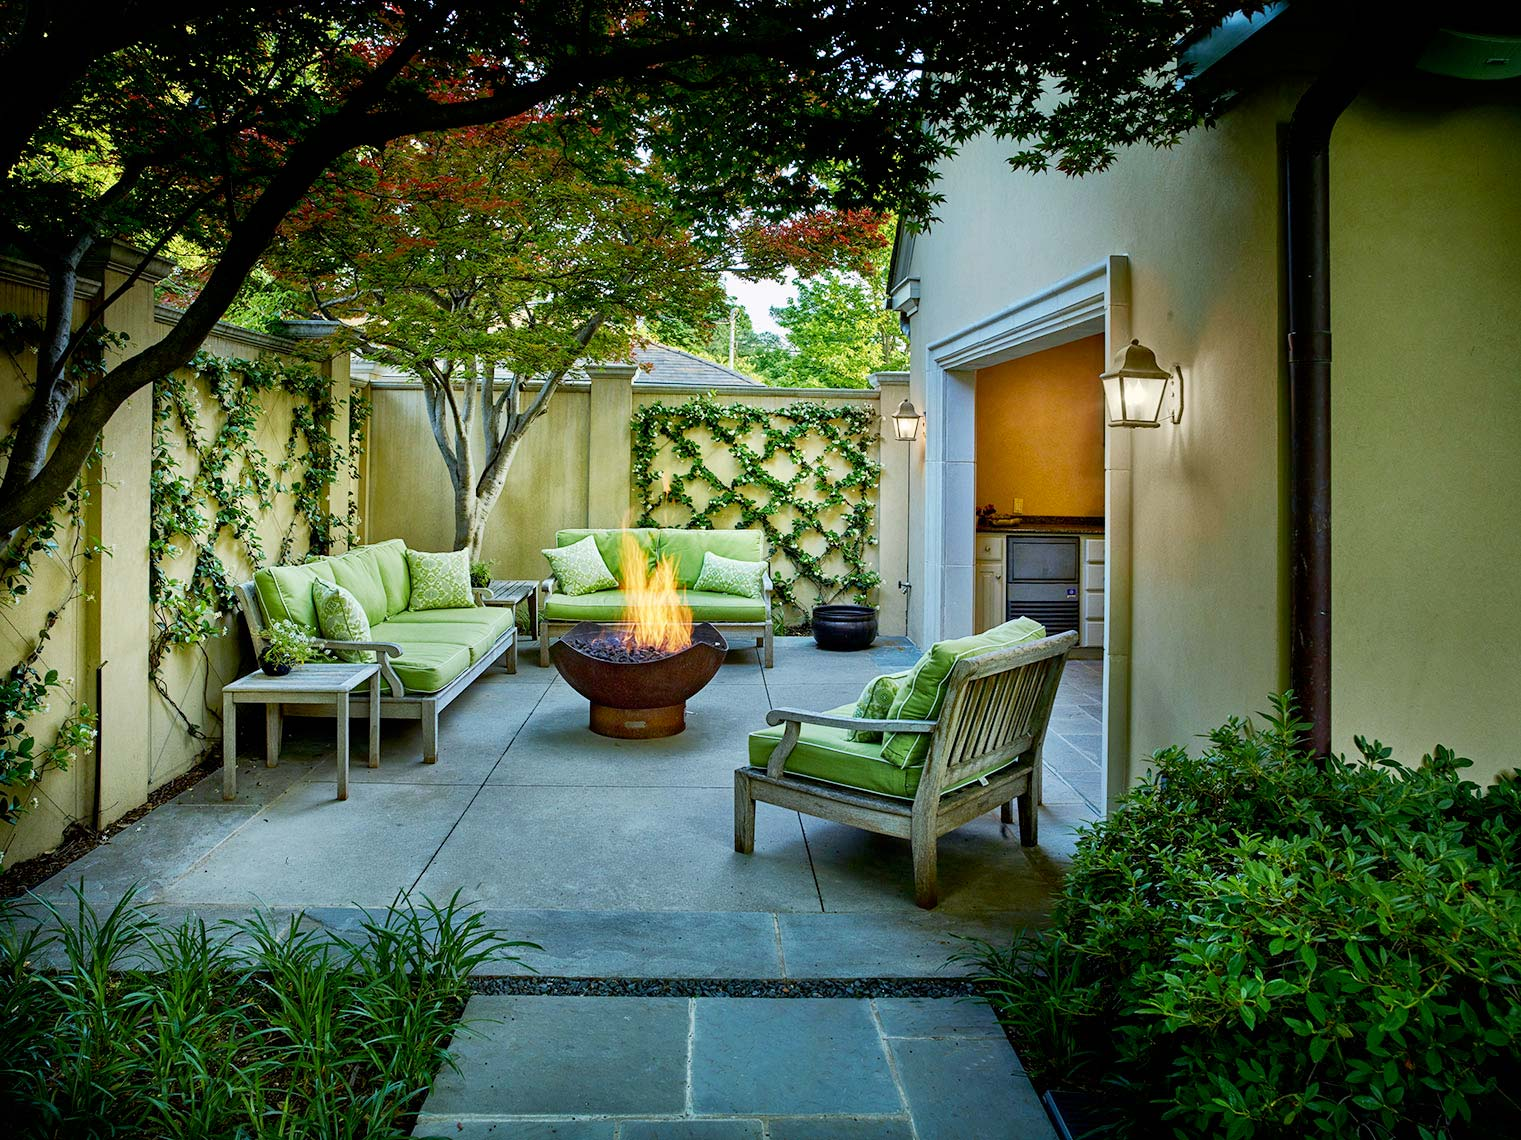 outdoor living areas with fire pits and  outdoor furniture.